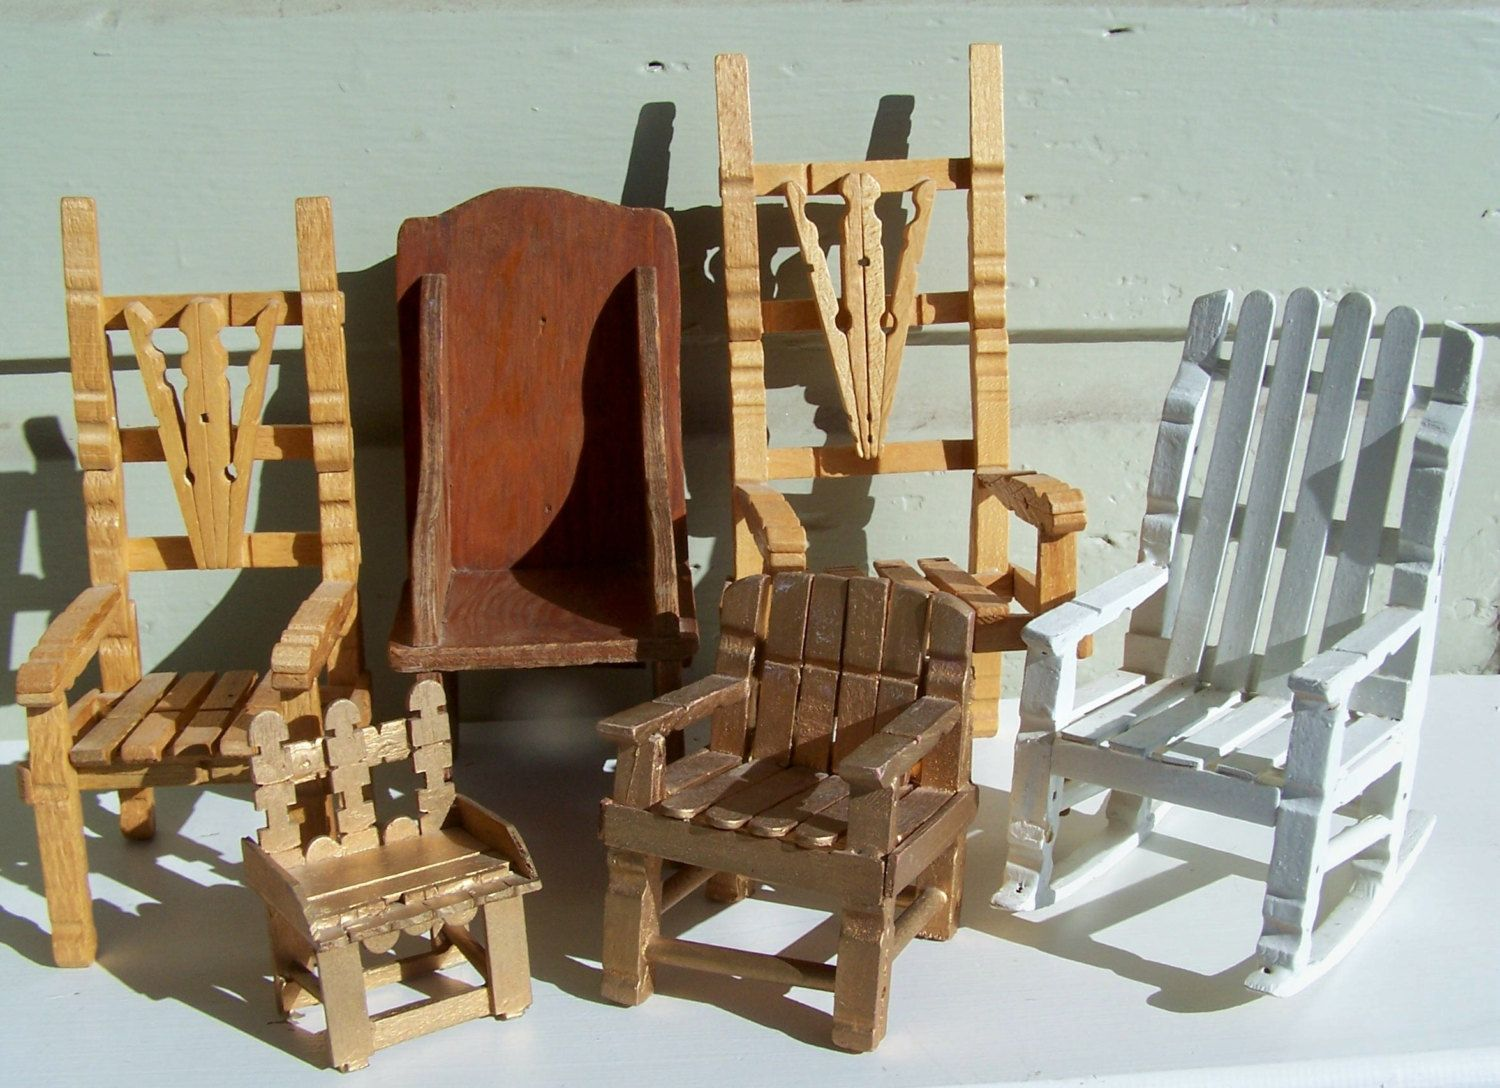 Vintage Collectible , Outsider Art Handmade Chairs Clothes Pin Crafting Tramp Art Doll Sized Chairs. $42.00, via Etsy.